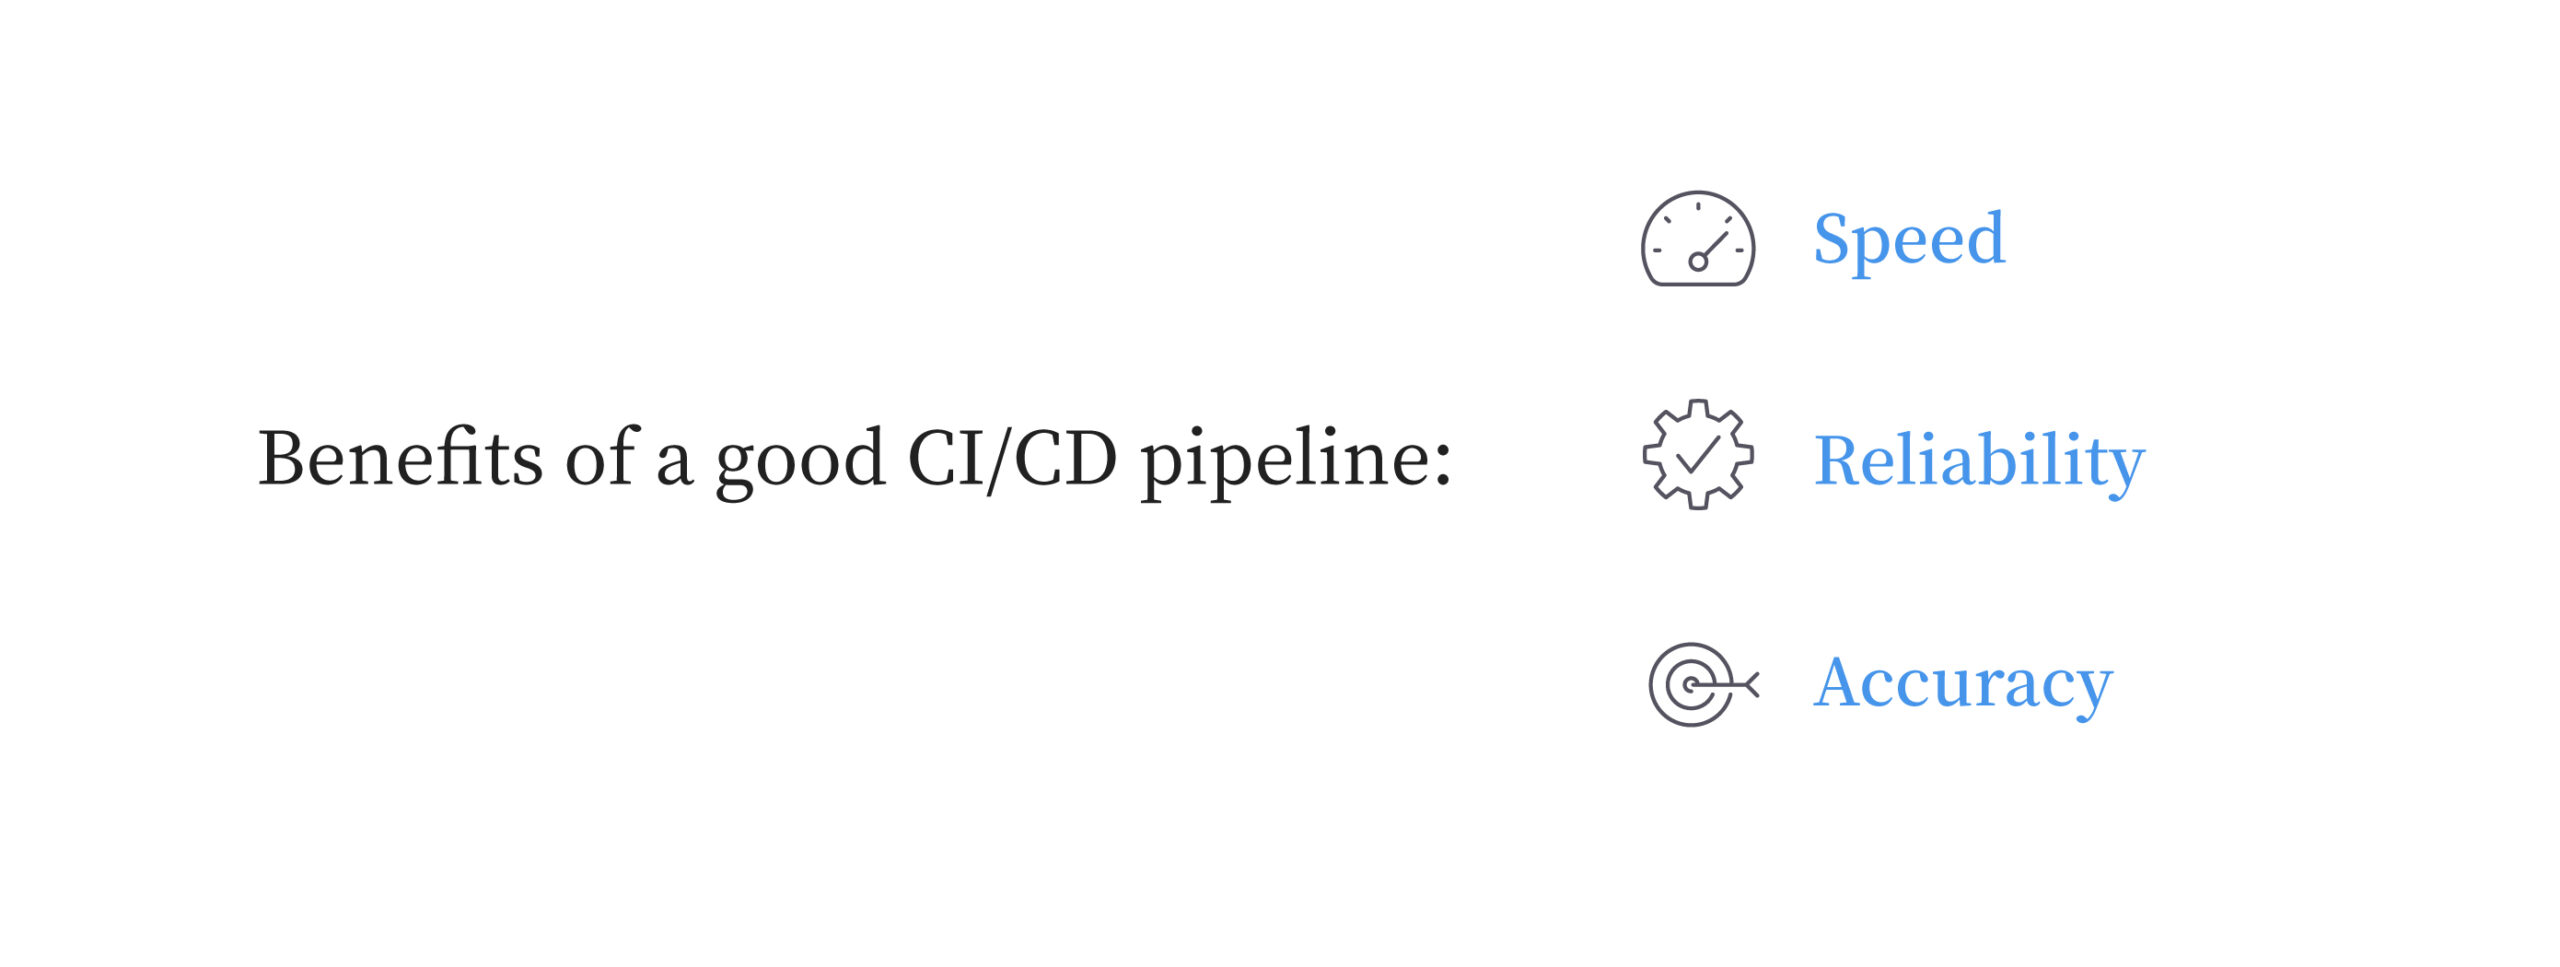 Benefits of a good CI/CD pipeline are speed, reliability, and accuracy.